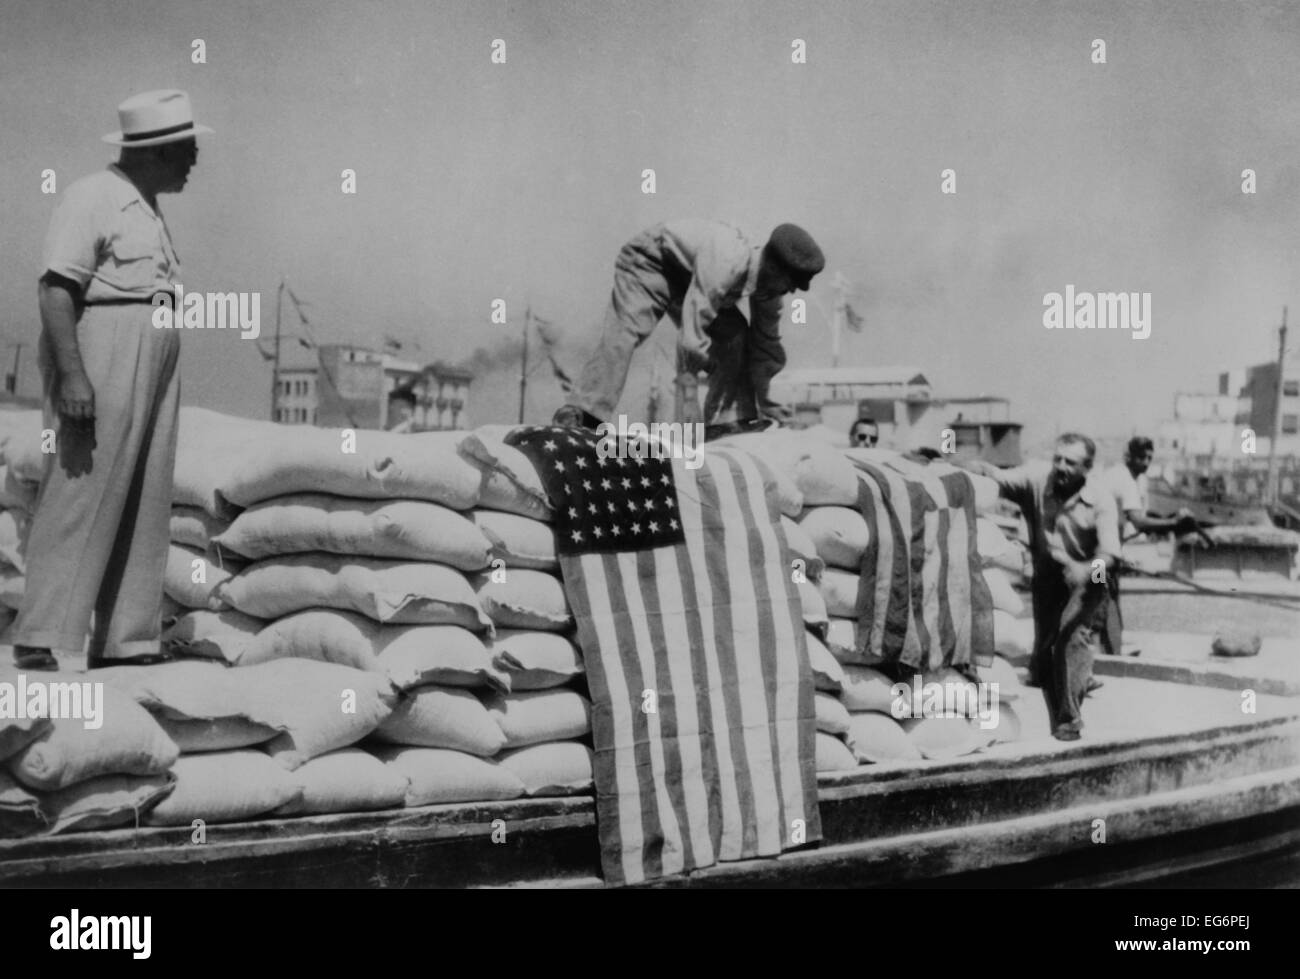 Sacks of flour, the first relief supplies from the United States, being unloaded in the port of Piraeus. American Stock Photo